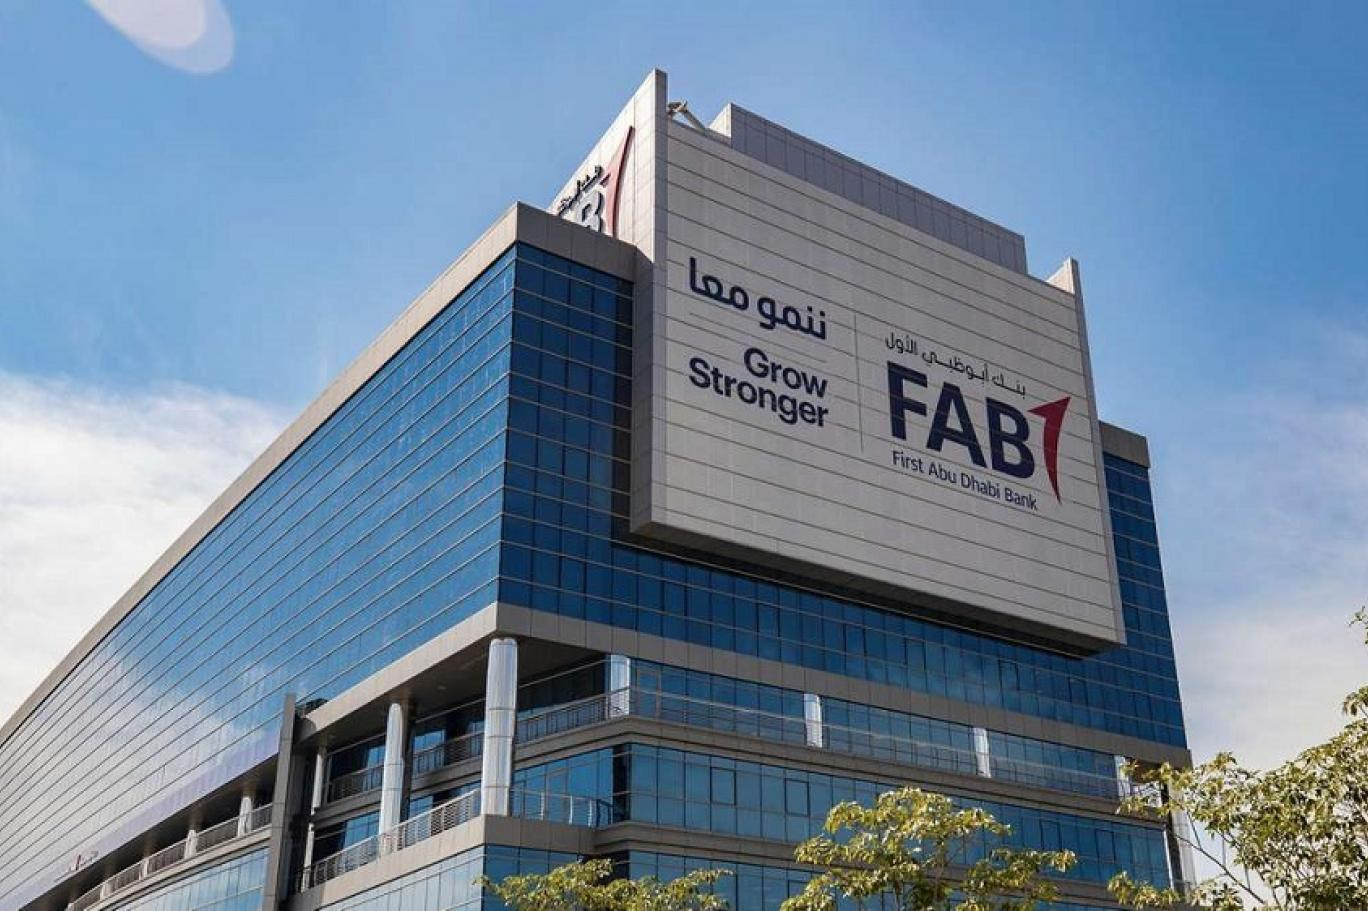 UAE's two biggest banks, National Bank of Dubai and First Abu Dhabi Bank, reported a decline in profits last year.